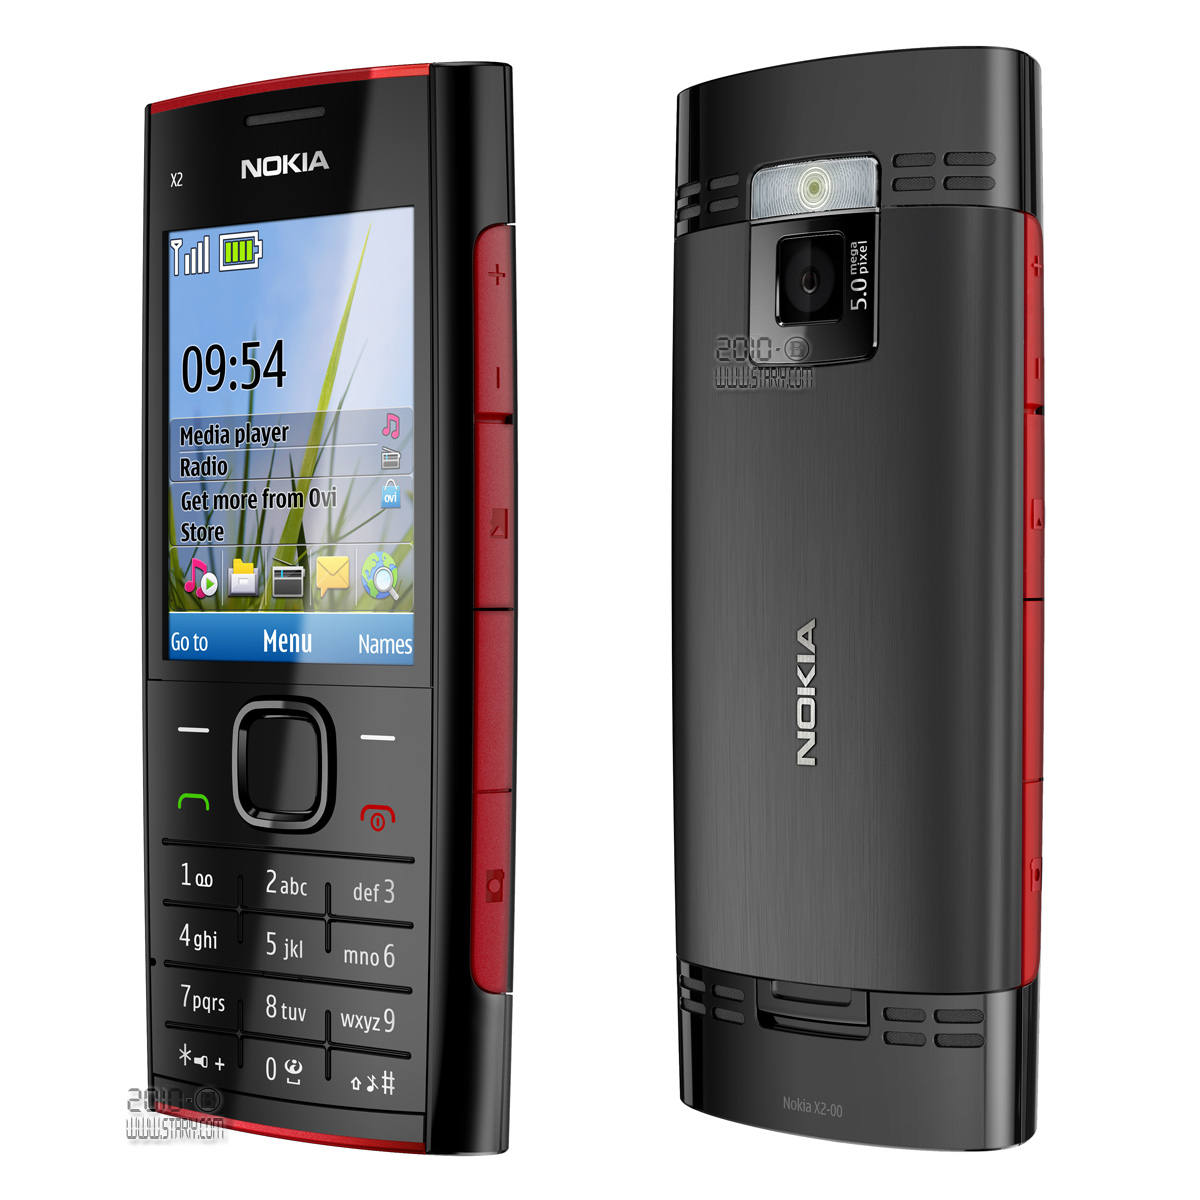 Wallpaper X3 Nokia At Lowes Telephone Line Wiring Group Picture Image By Tag Keywordpictures Http 3bpblogspotcom Toycg H4fkg